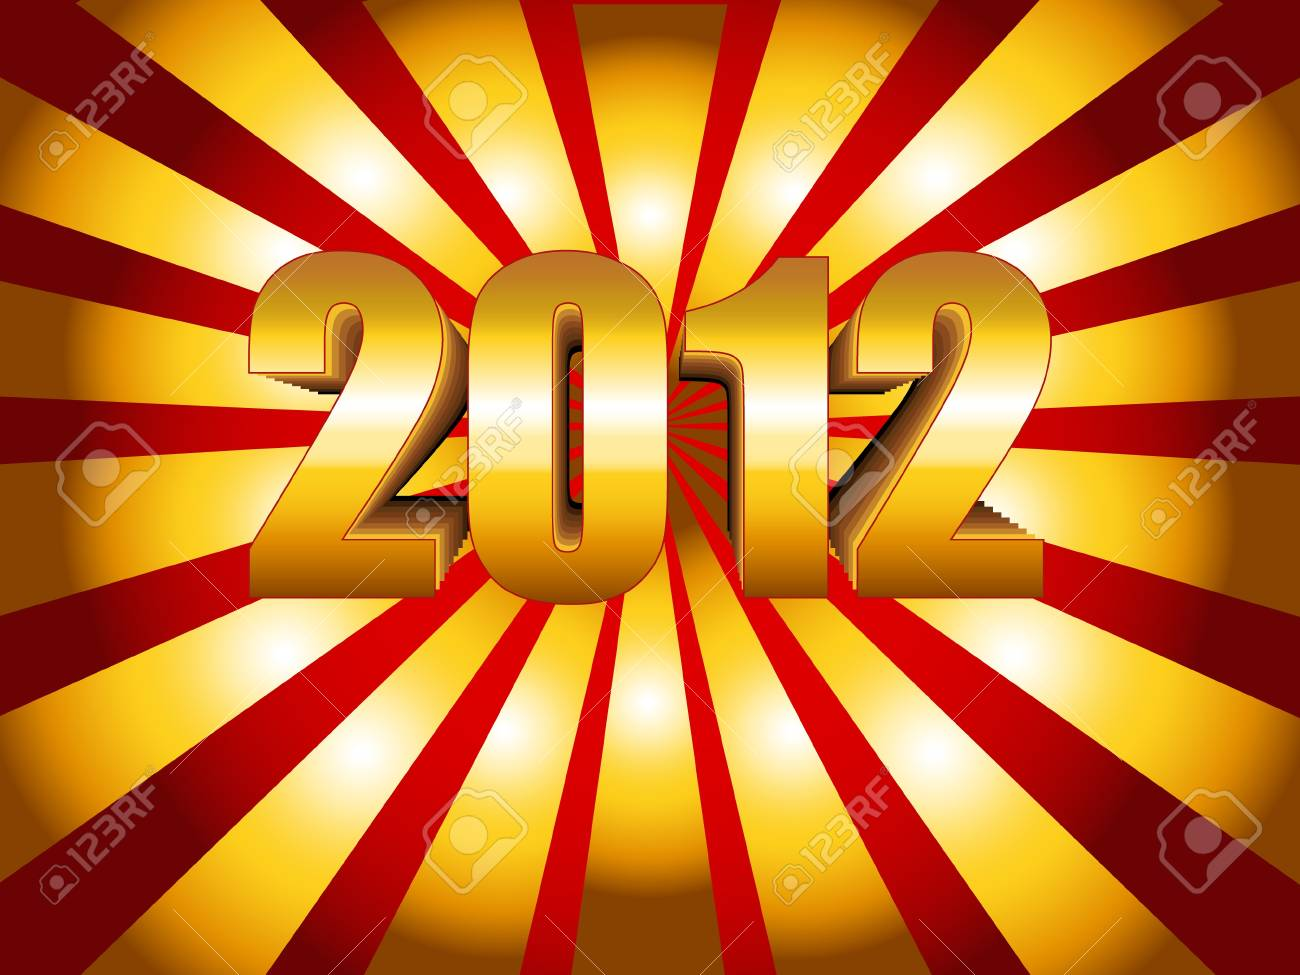 Fun and festive 2012 New Year's Eve celebration background with gold sunburst over gradient red. Stock Vector - 9930174